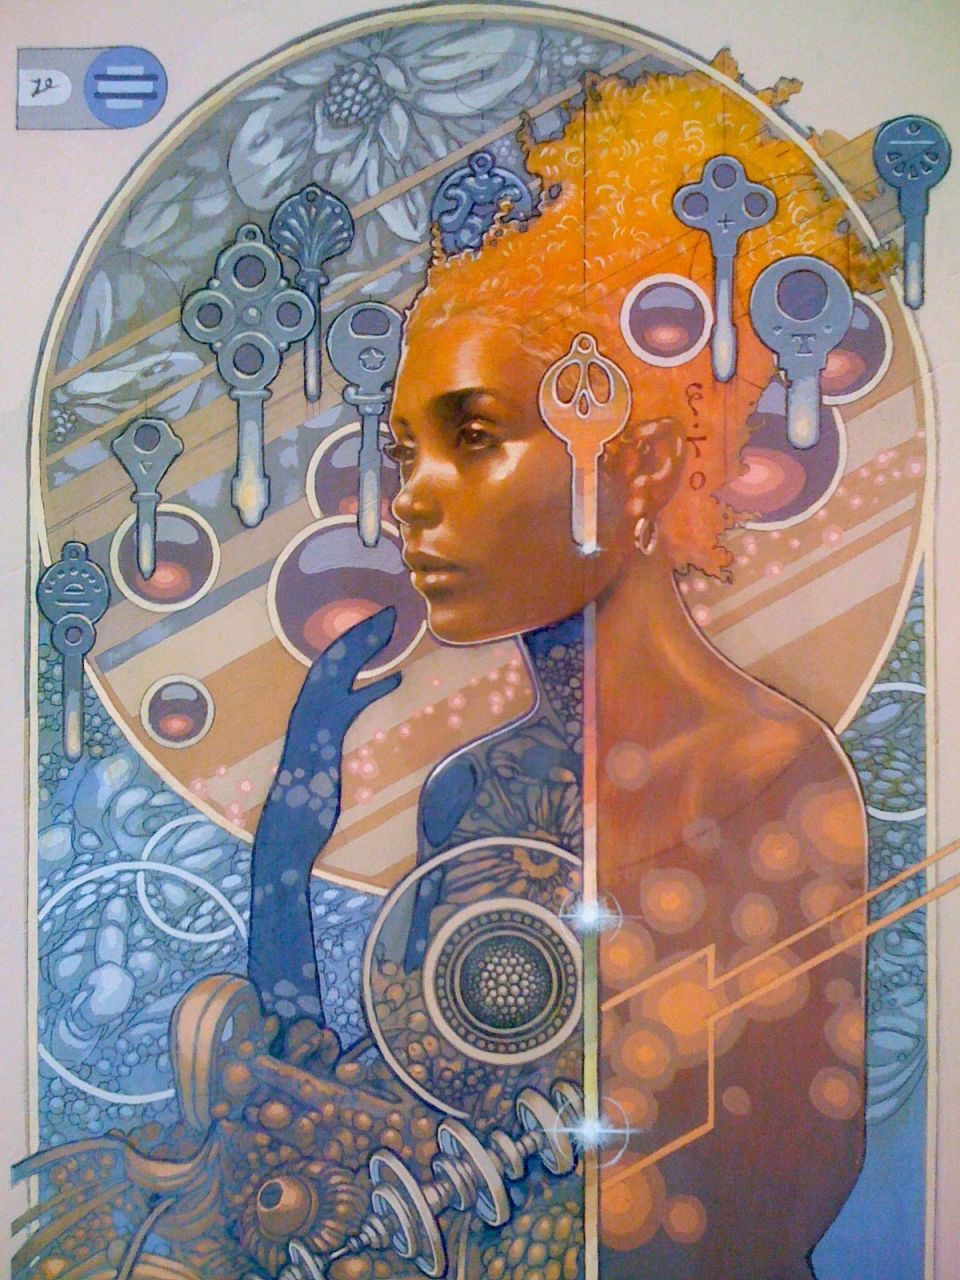 New work by Joshua Mays | A Vision and A Vow